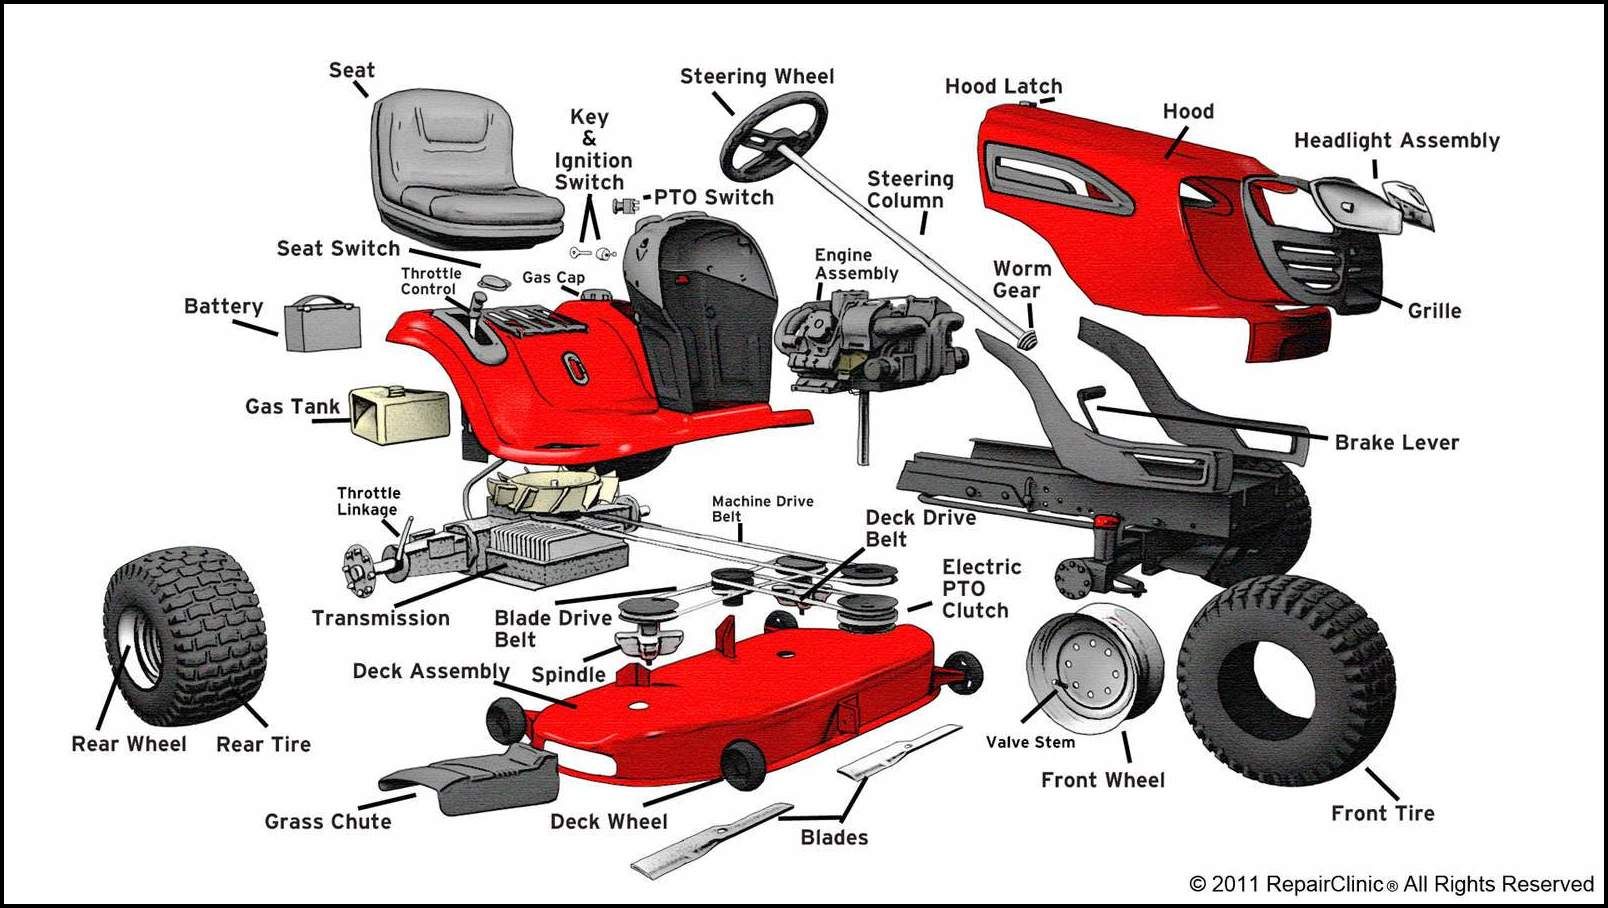 Riding Lawn Mower Diagram Wiring Data Sears Tractor Craftsman Parts The Garden